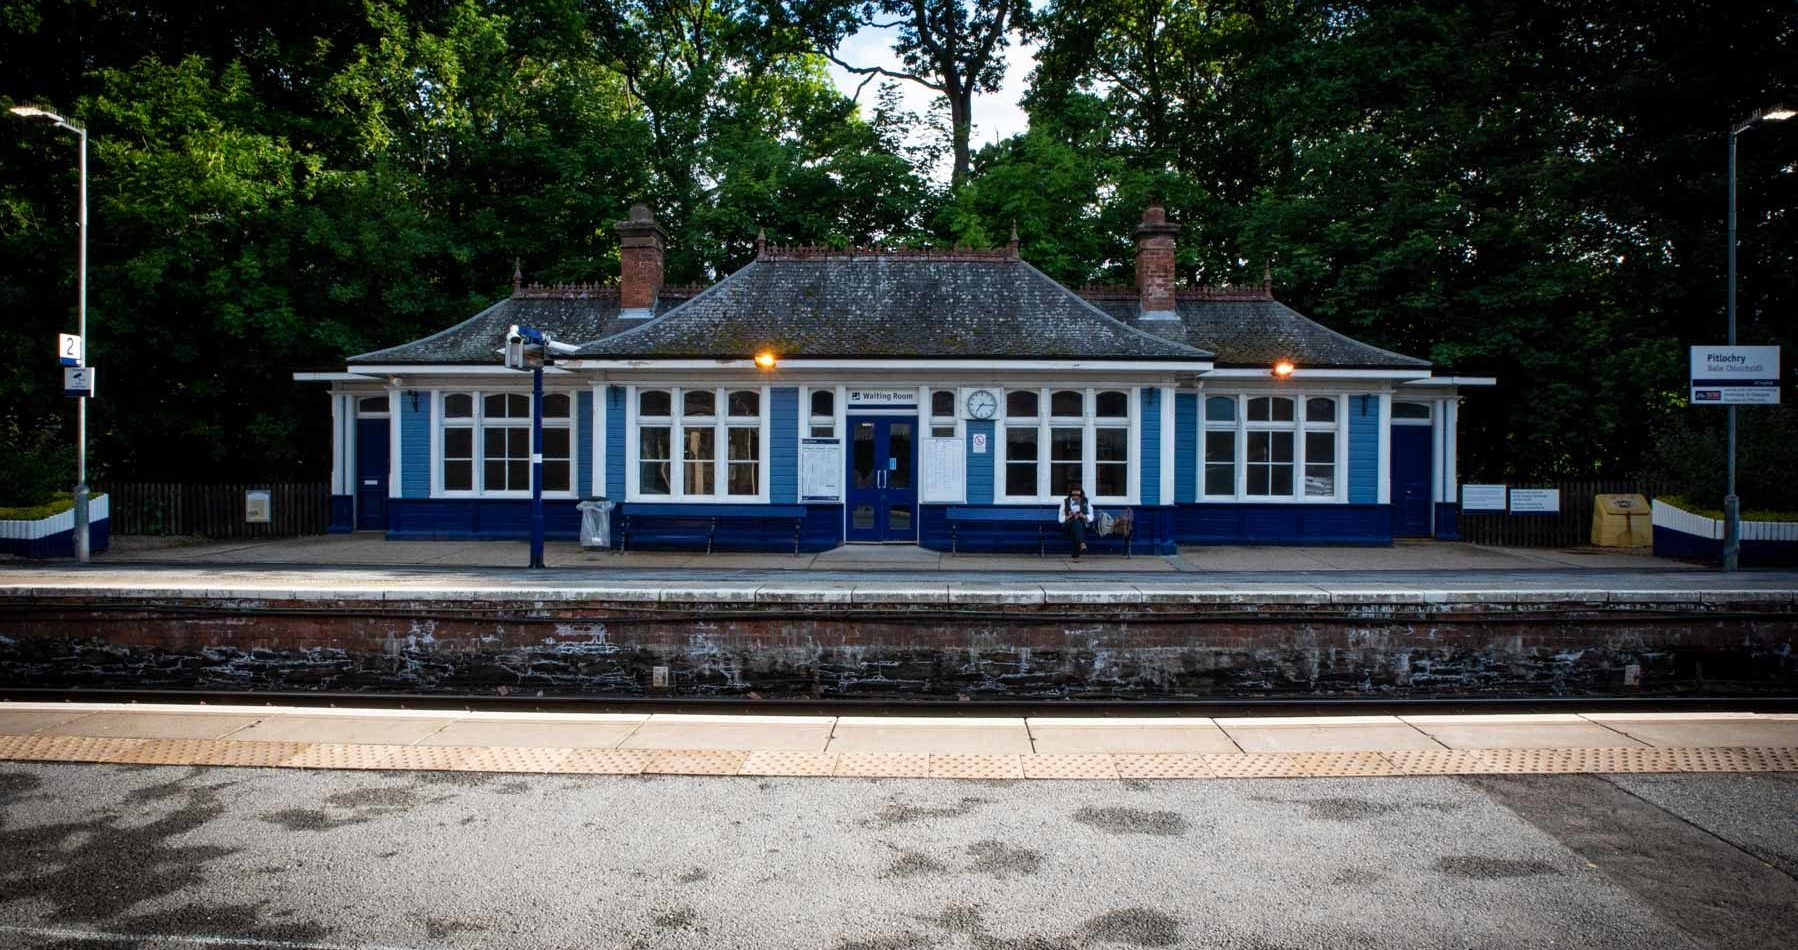 pitlochry-the-holiday-train-sir-edwards-roadtrip